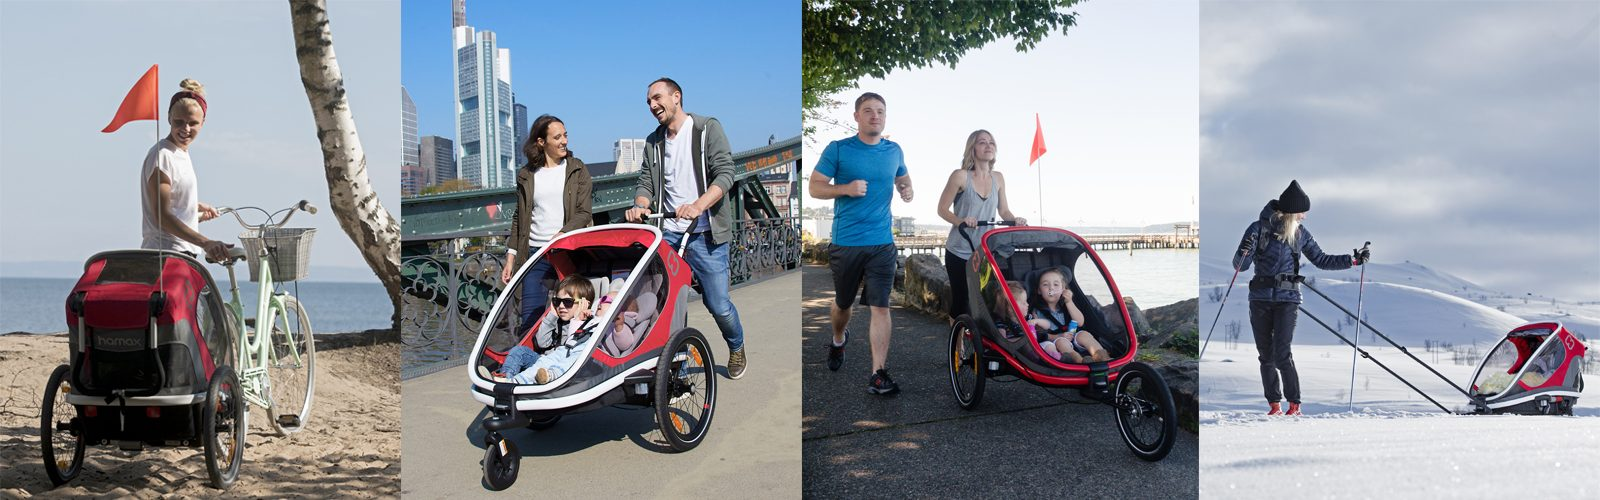 Hamax multifunctional child carrier can be used as biketrailer, stroller, jogger and with skiing kit